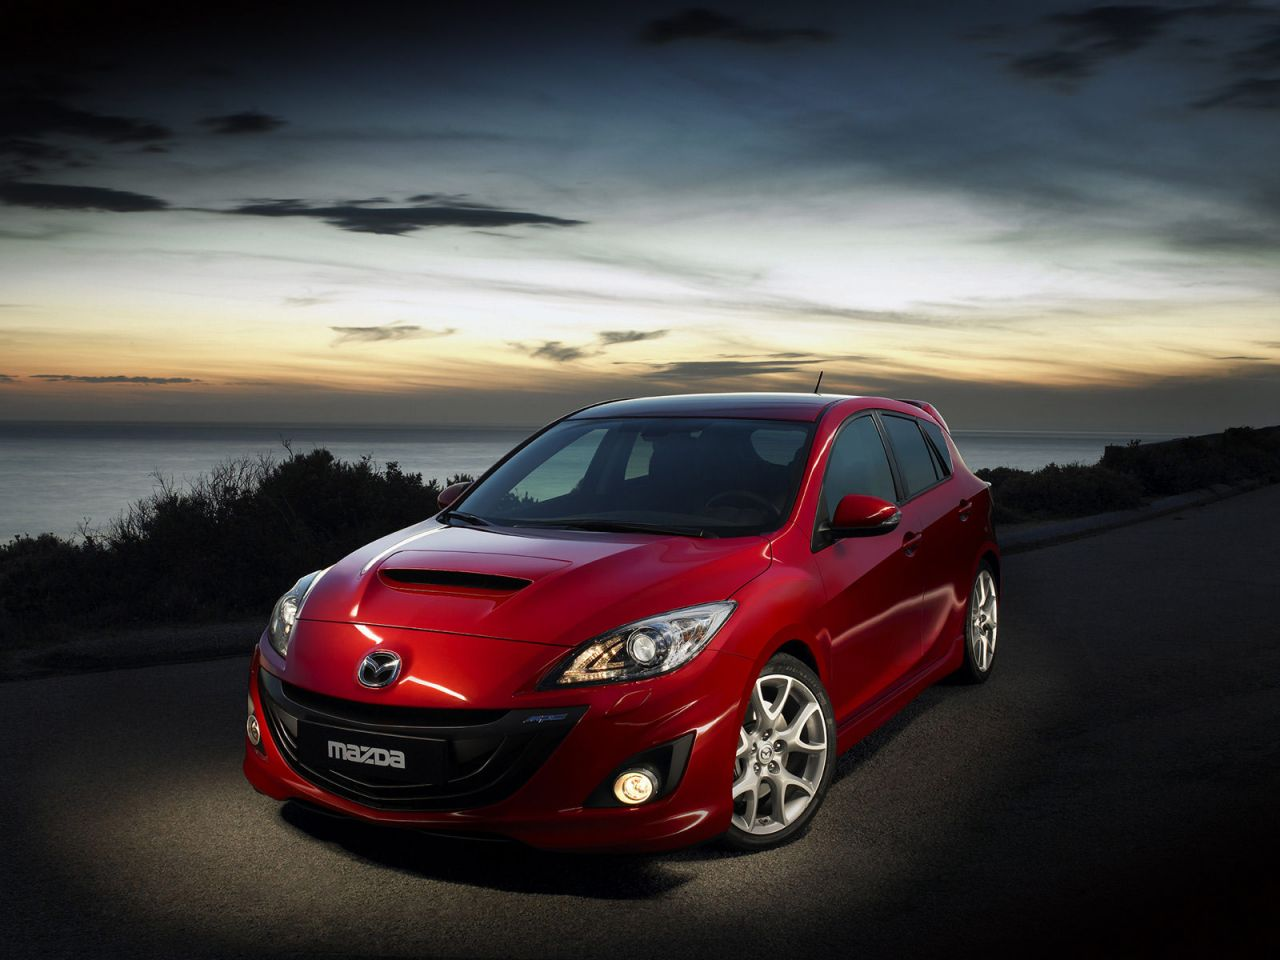 Mazda 3 Mps Red Front Side High Angle Wallpaper 1280x960